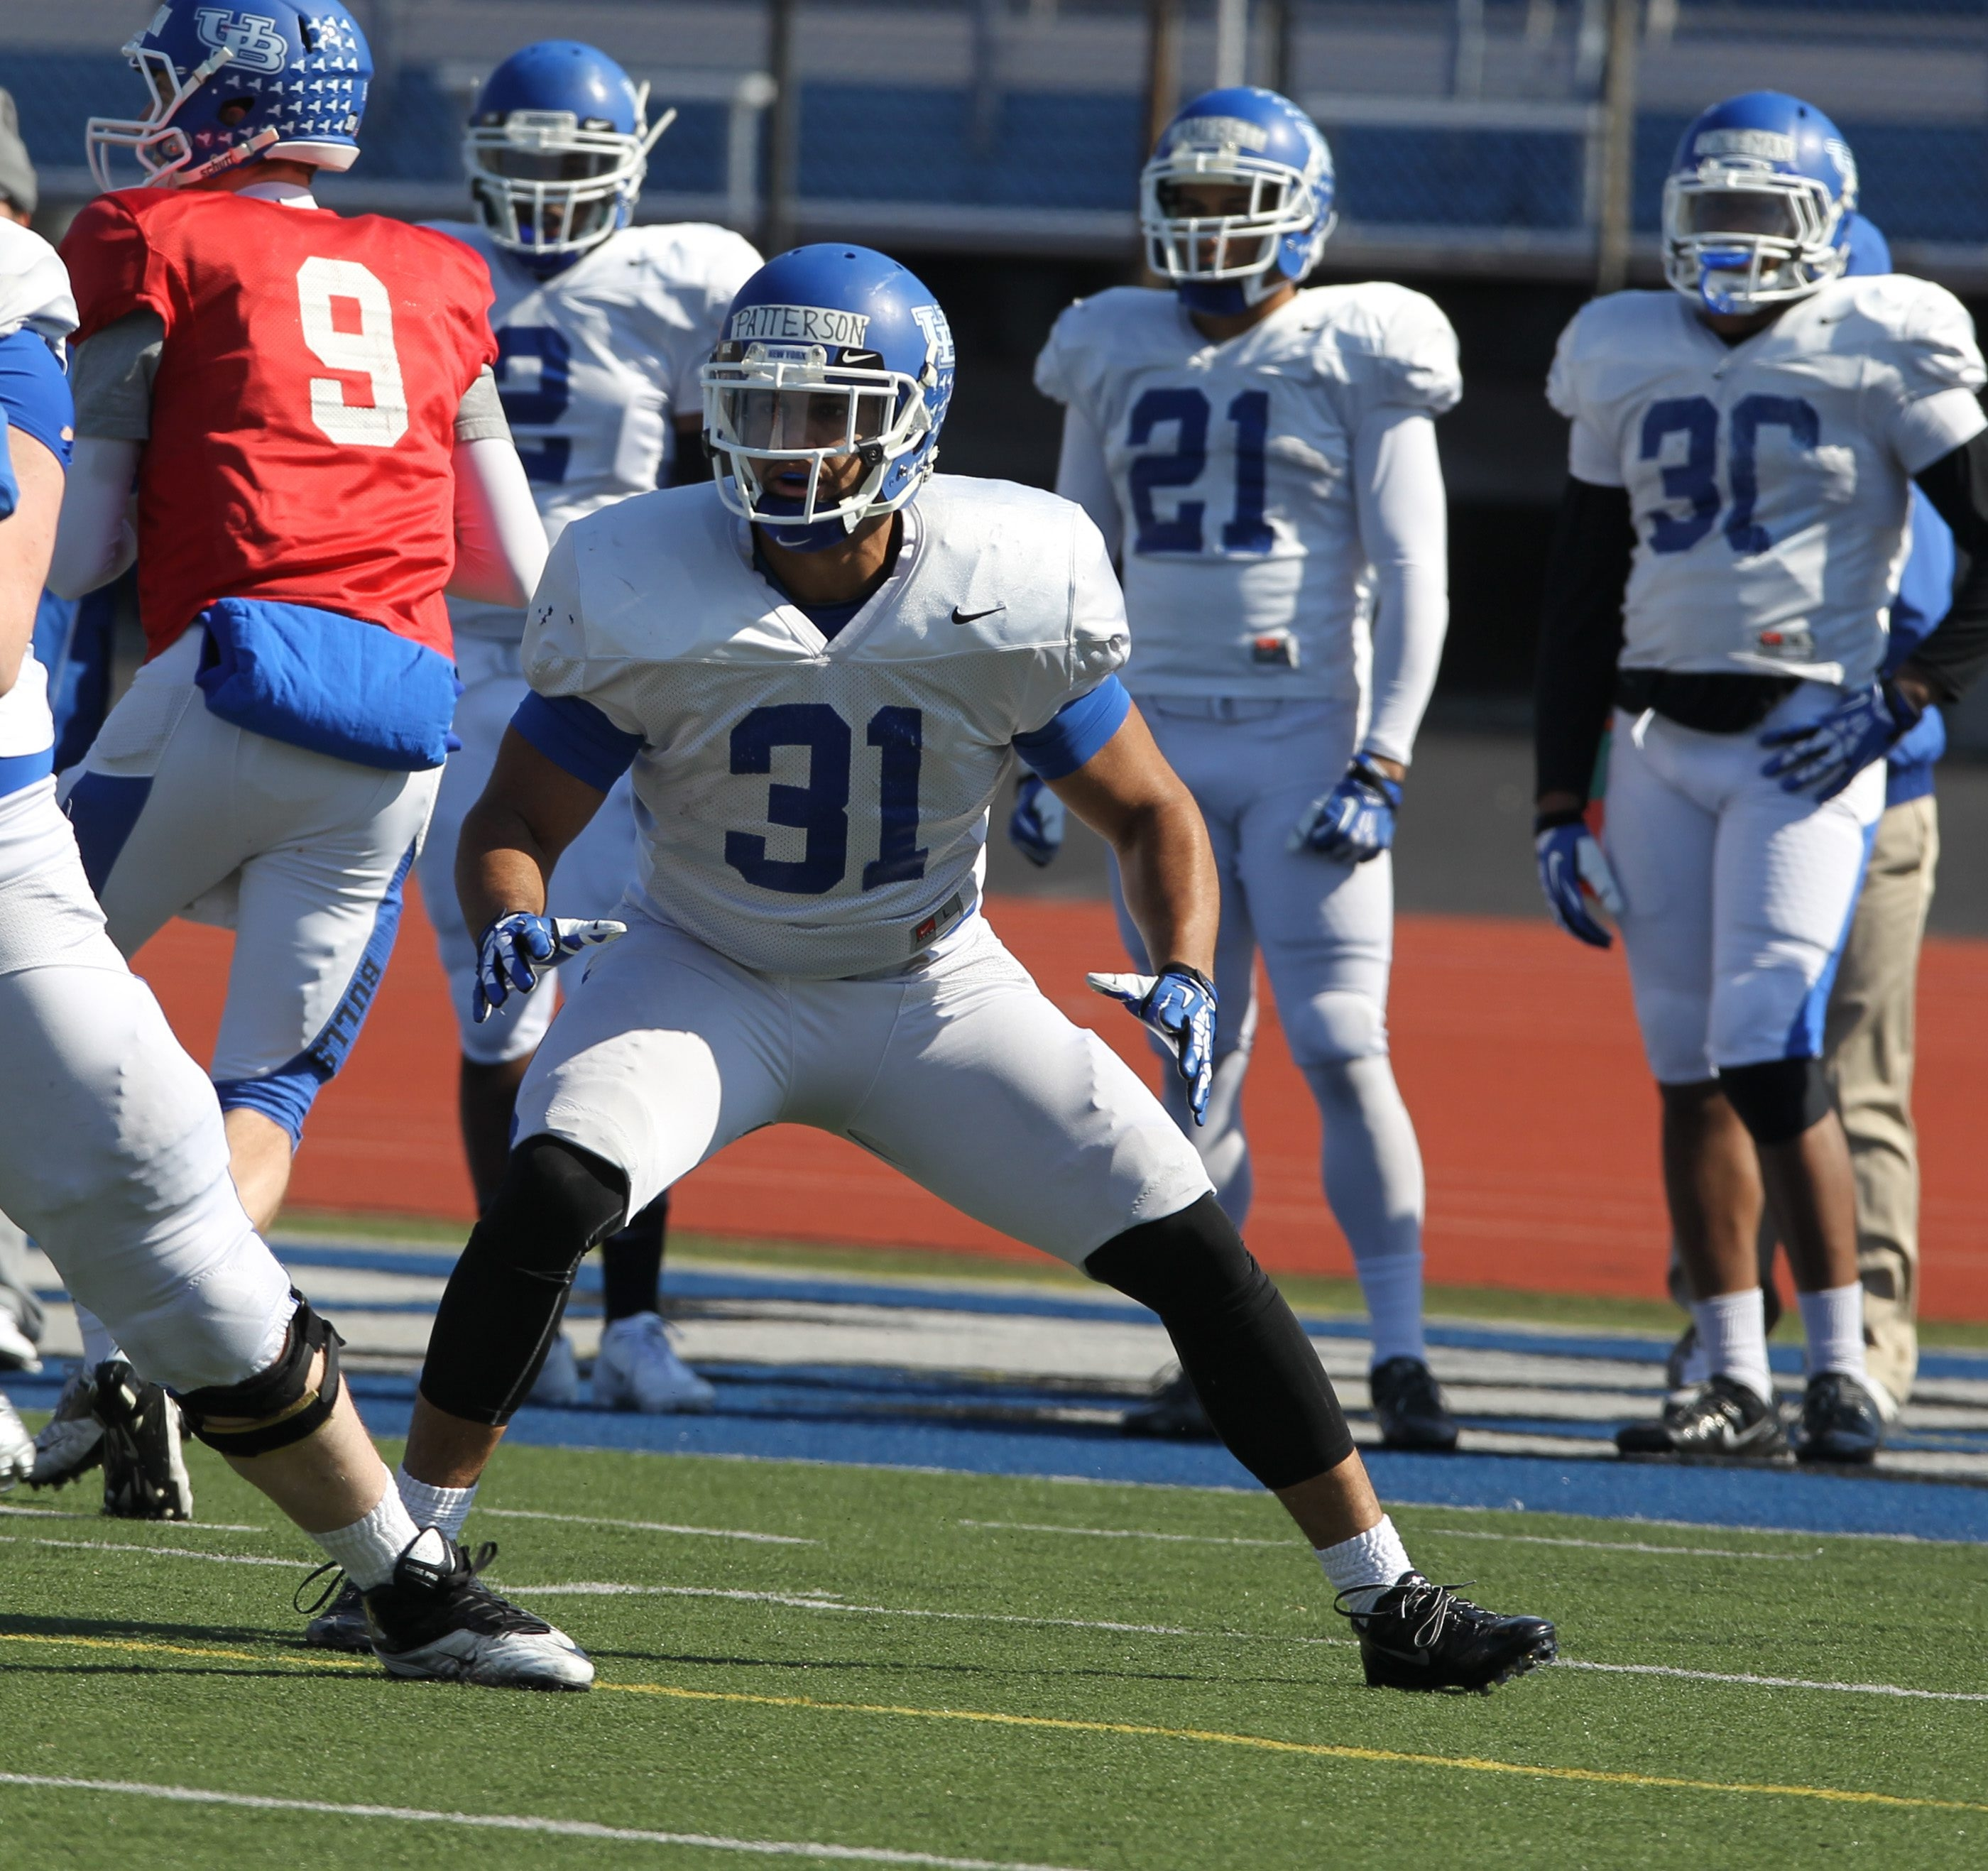 UB's Kendall Patterson, recruited as a nose tackle, is finding his way after switching to fullback.